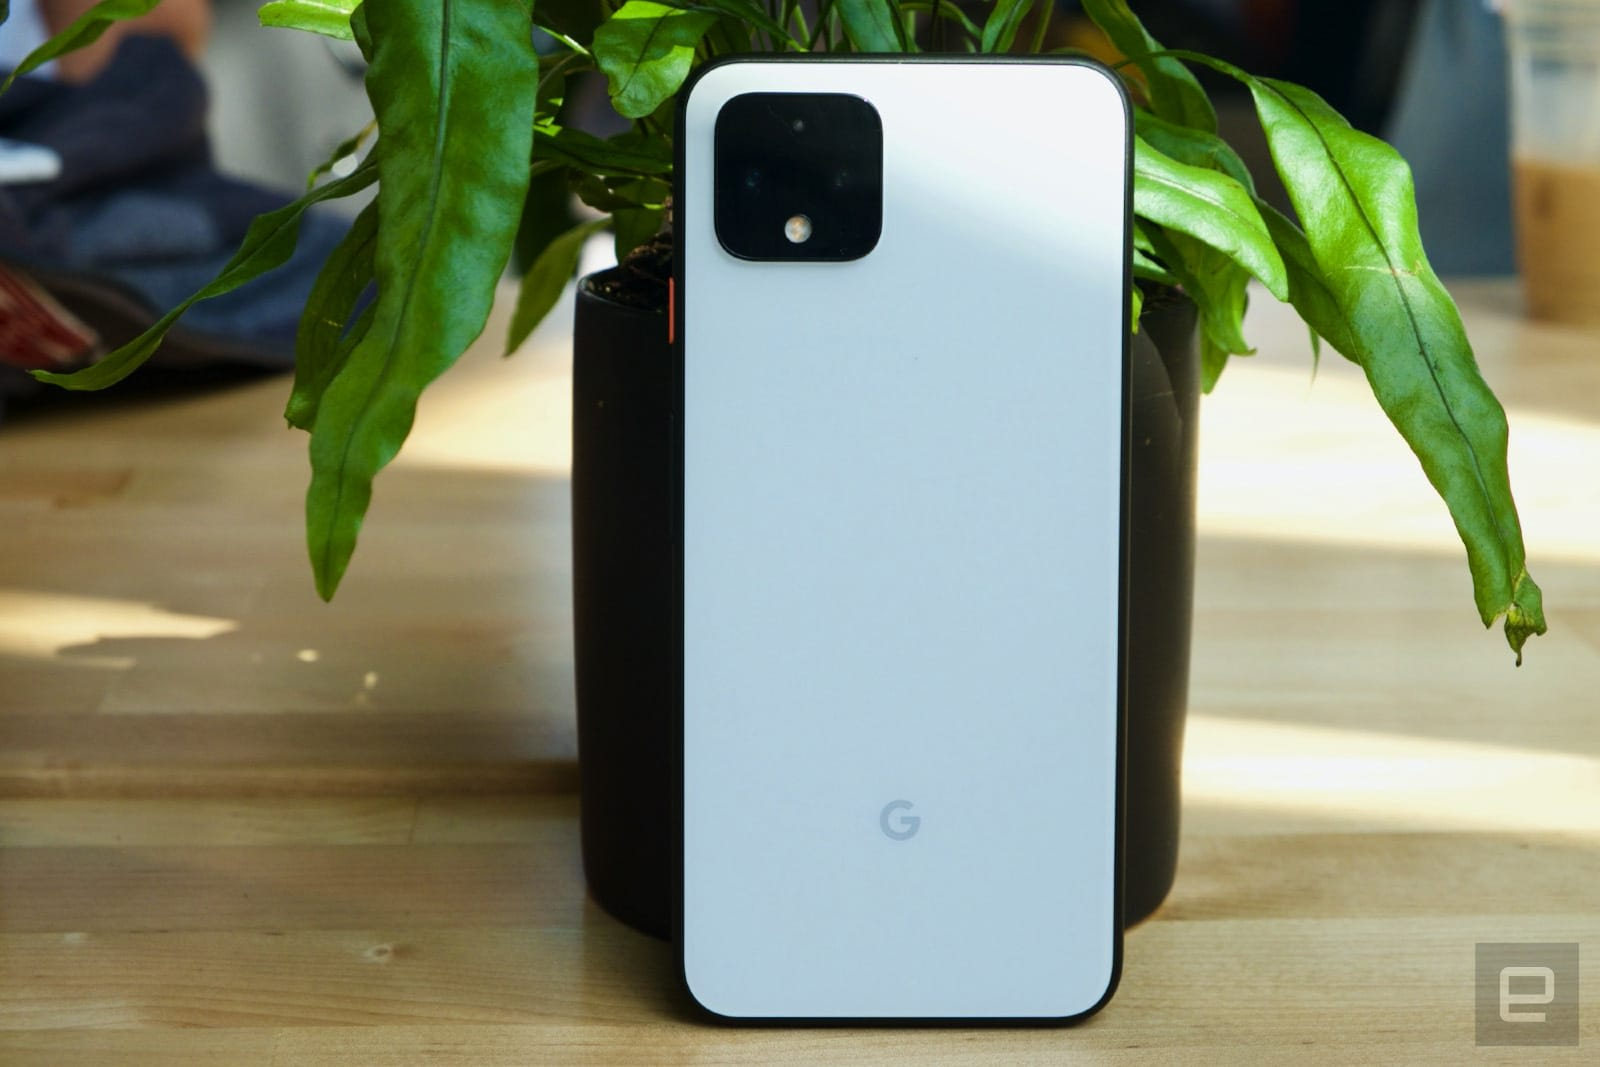 Pixel 4 won't come with free full-resolution photo storage